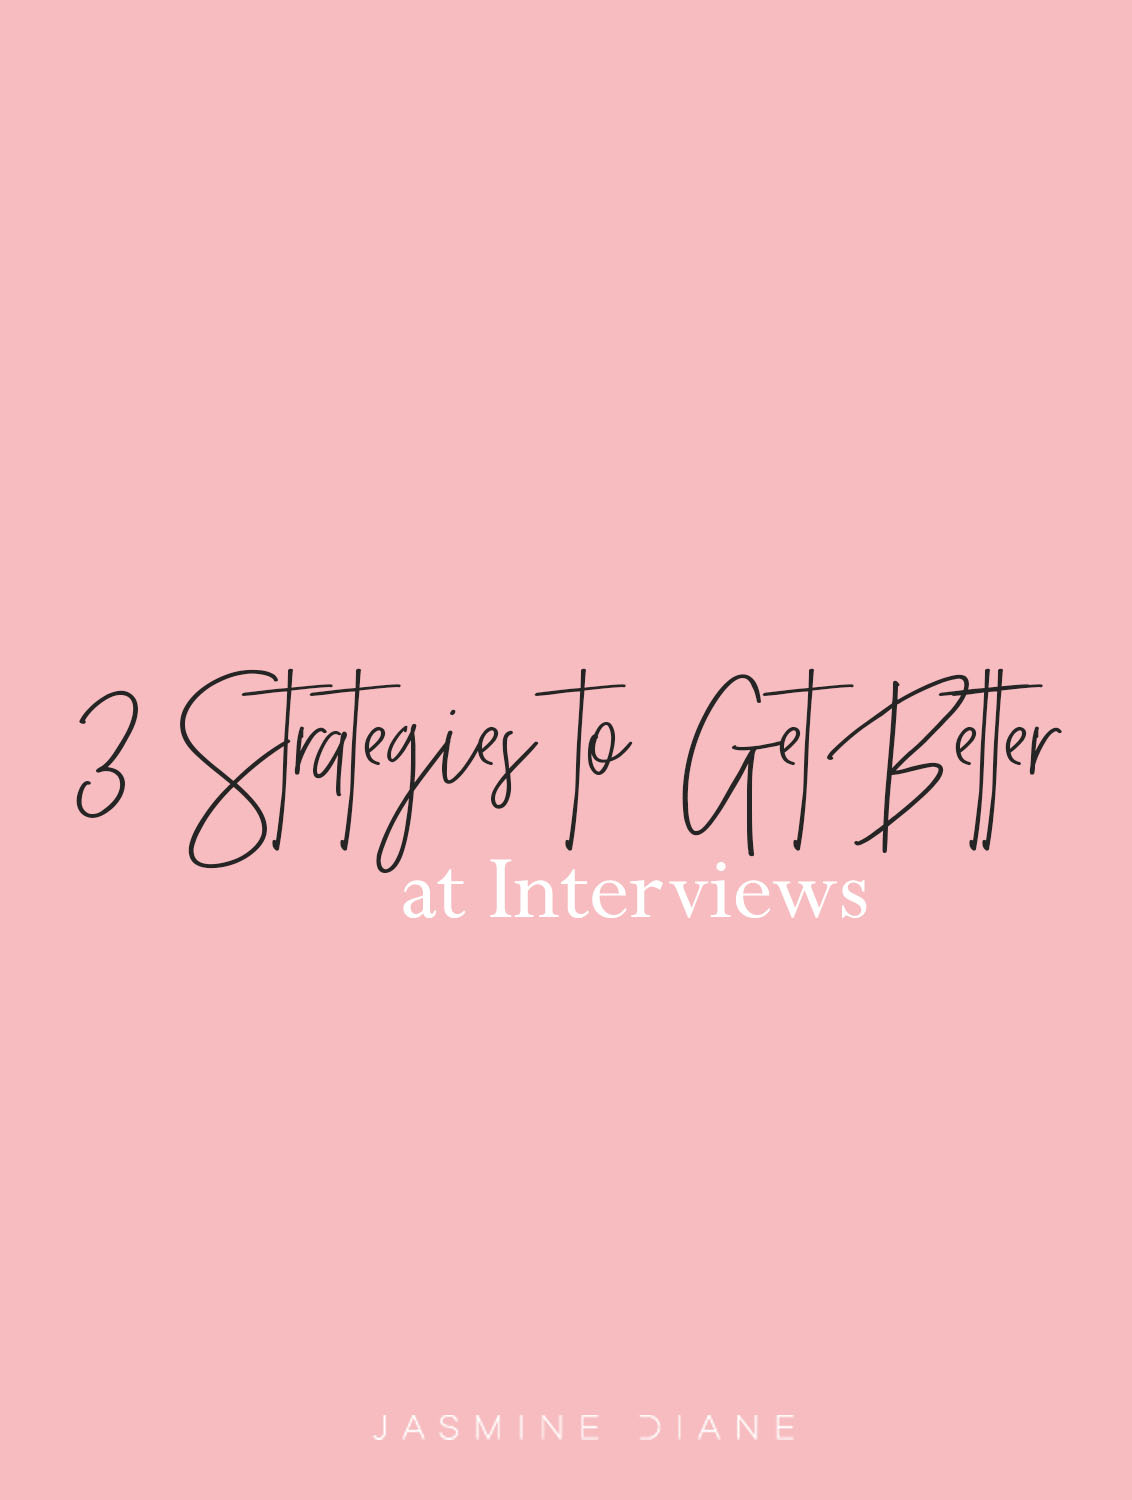 3 strategies to get better at interviews by jasmine diane